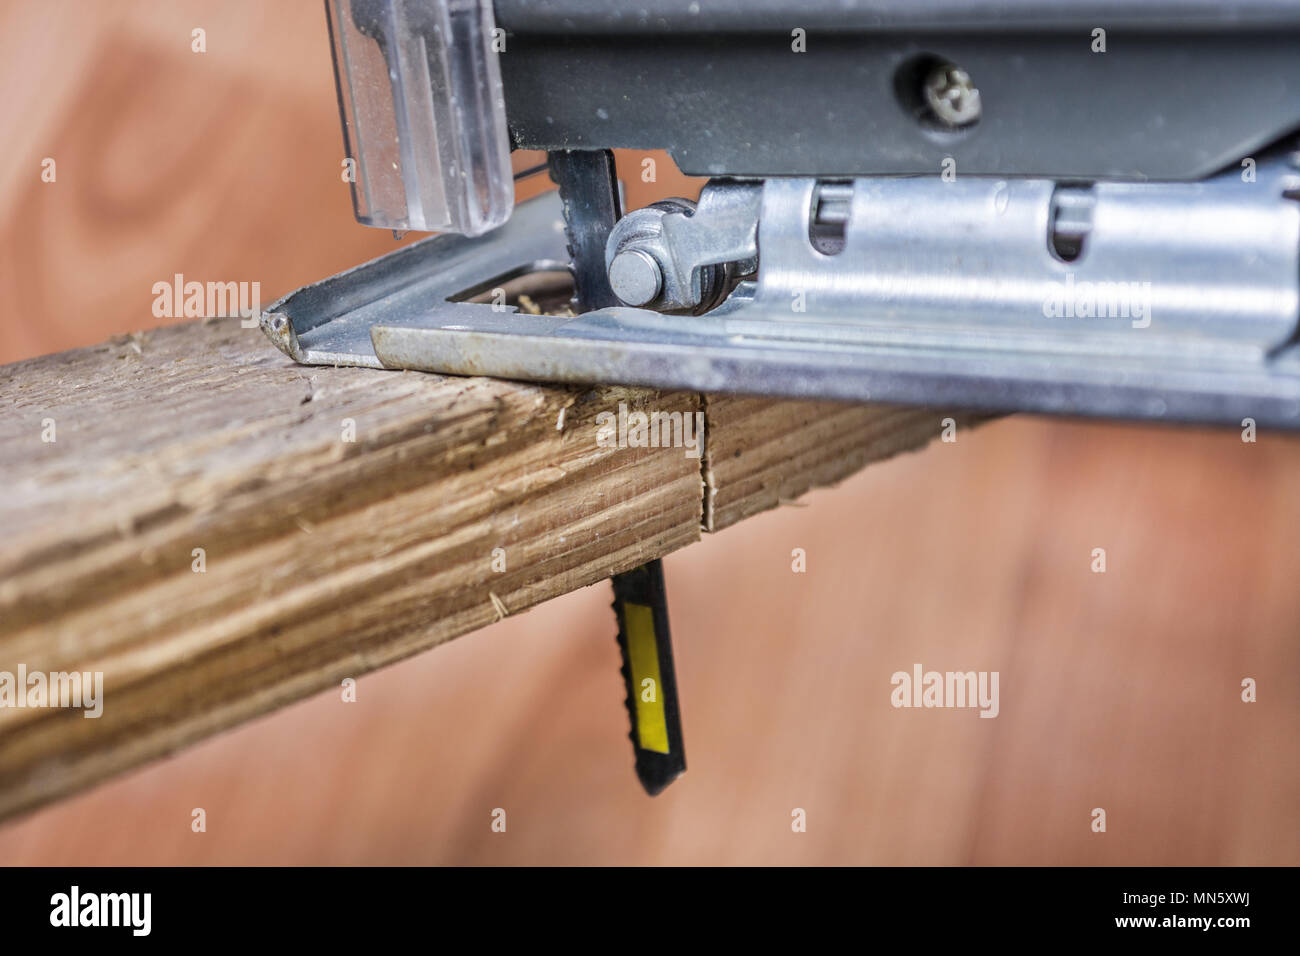 Cutting wood plank with jigsaw electric tool. Saw Blade in plank. Close up, selective focus. Stock Photo